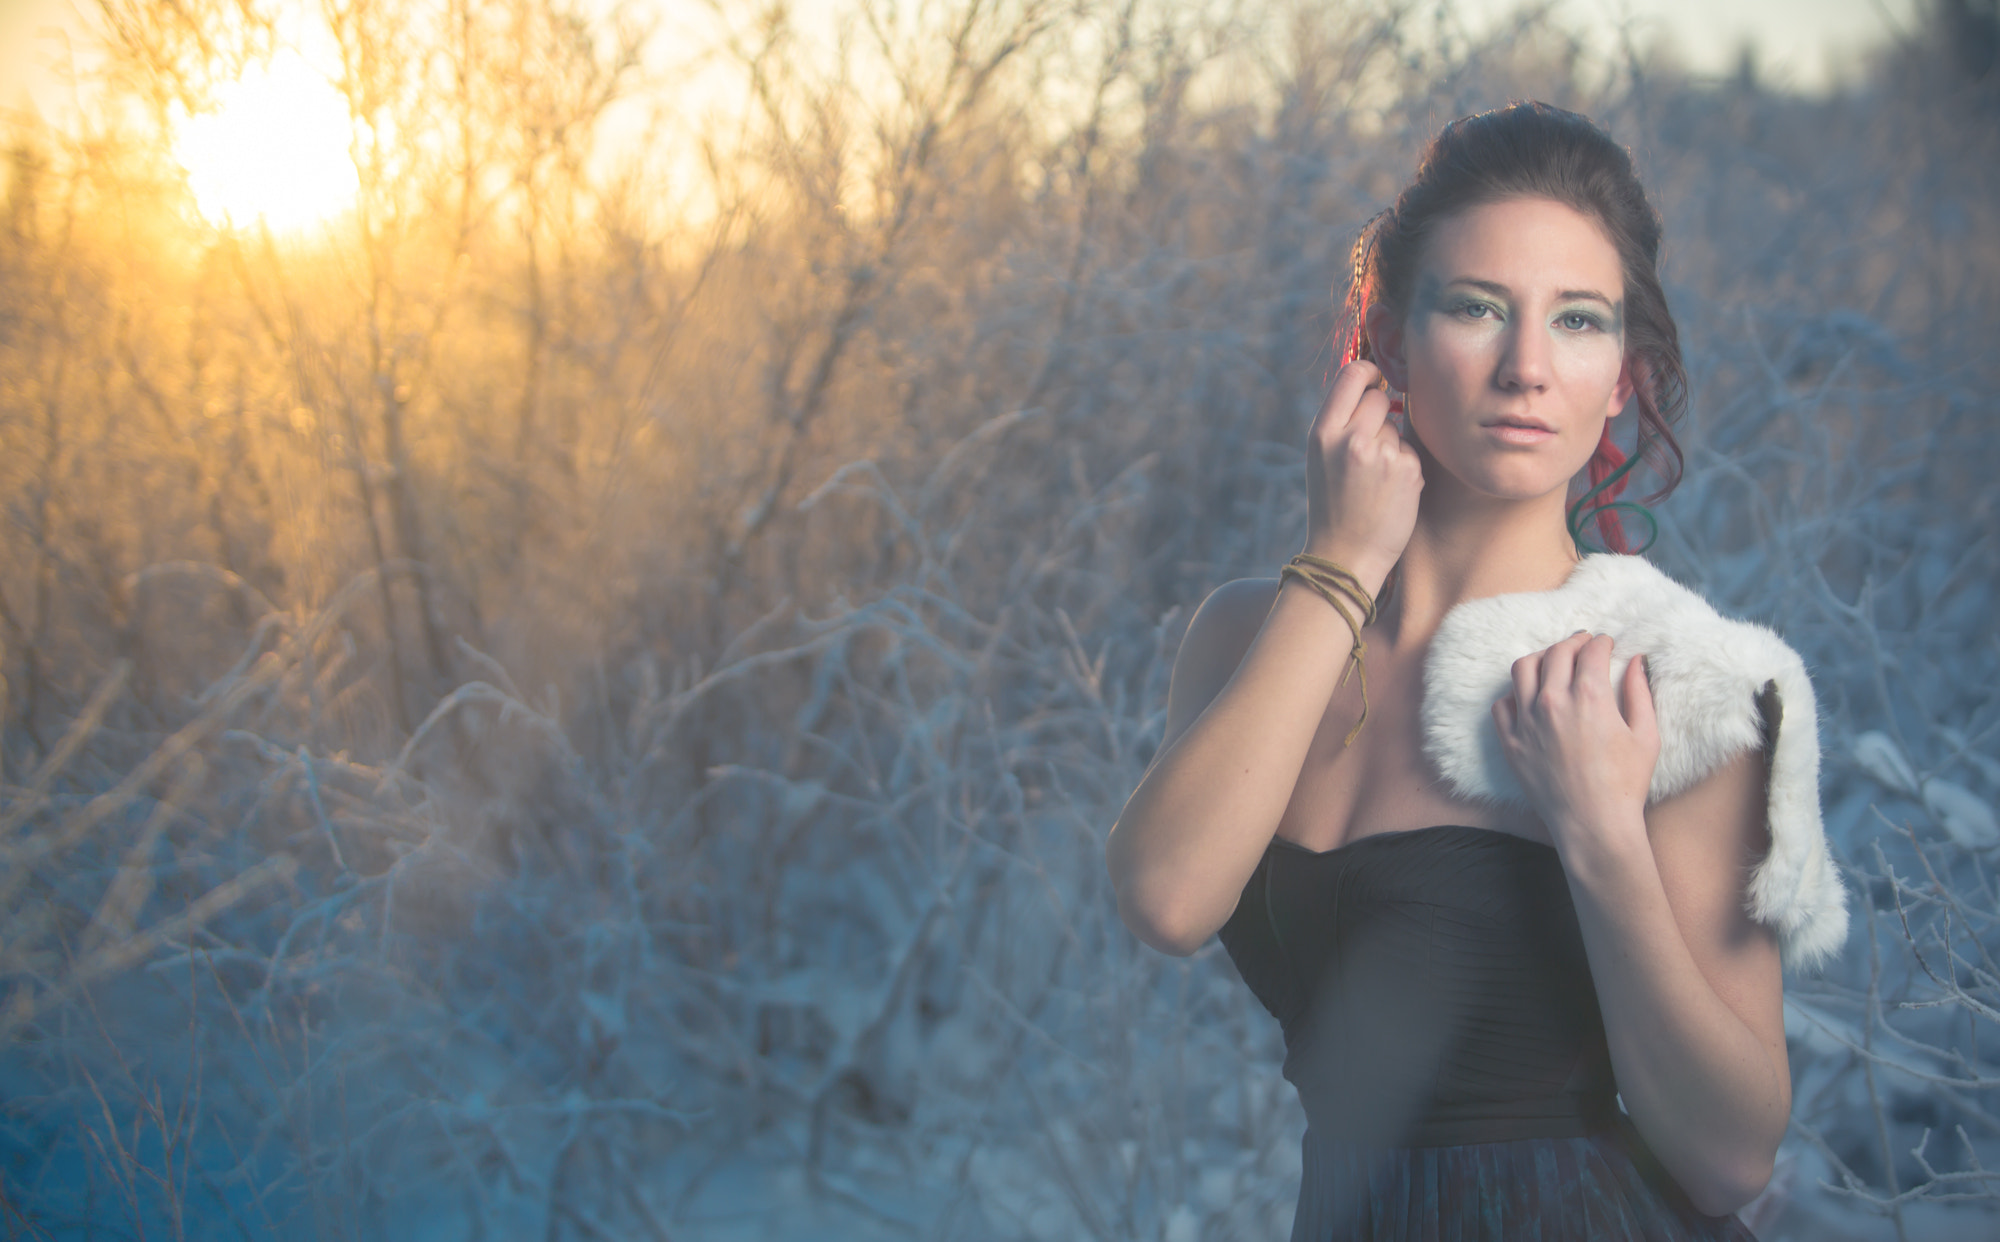 Photograph The Warmth of Winter by Dave Brosha on 500px